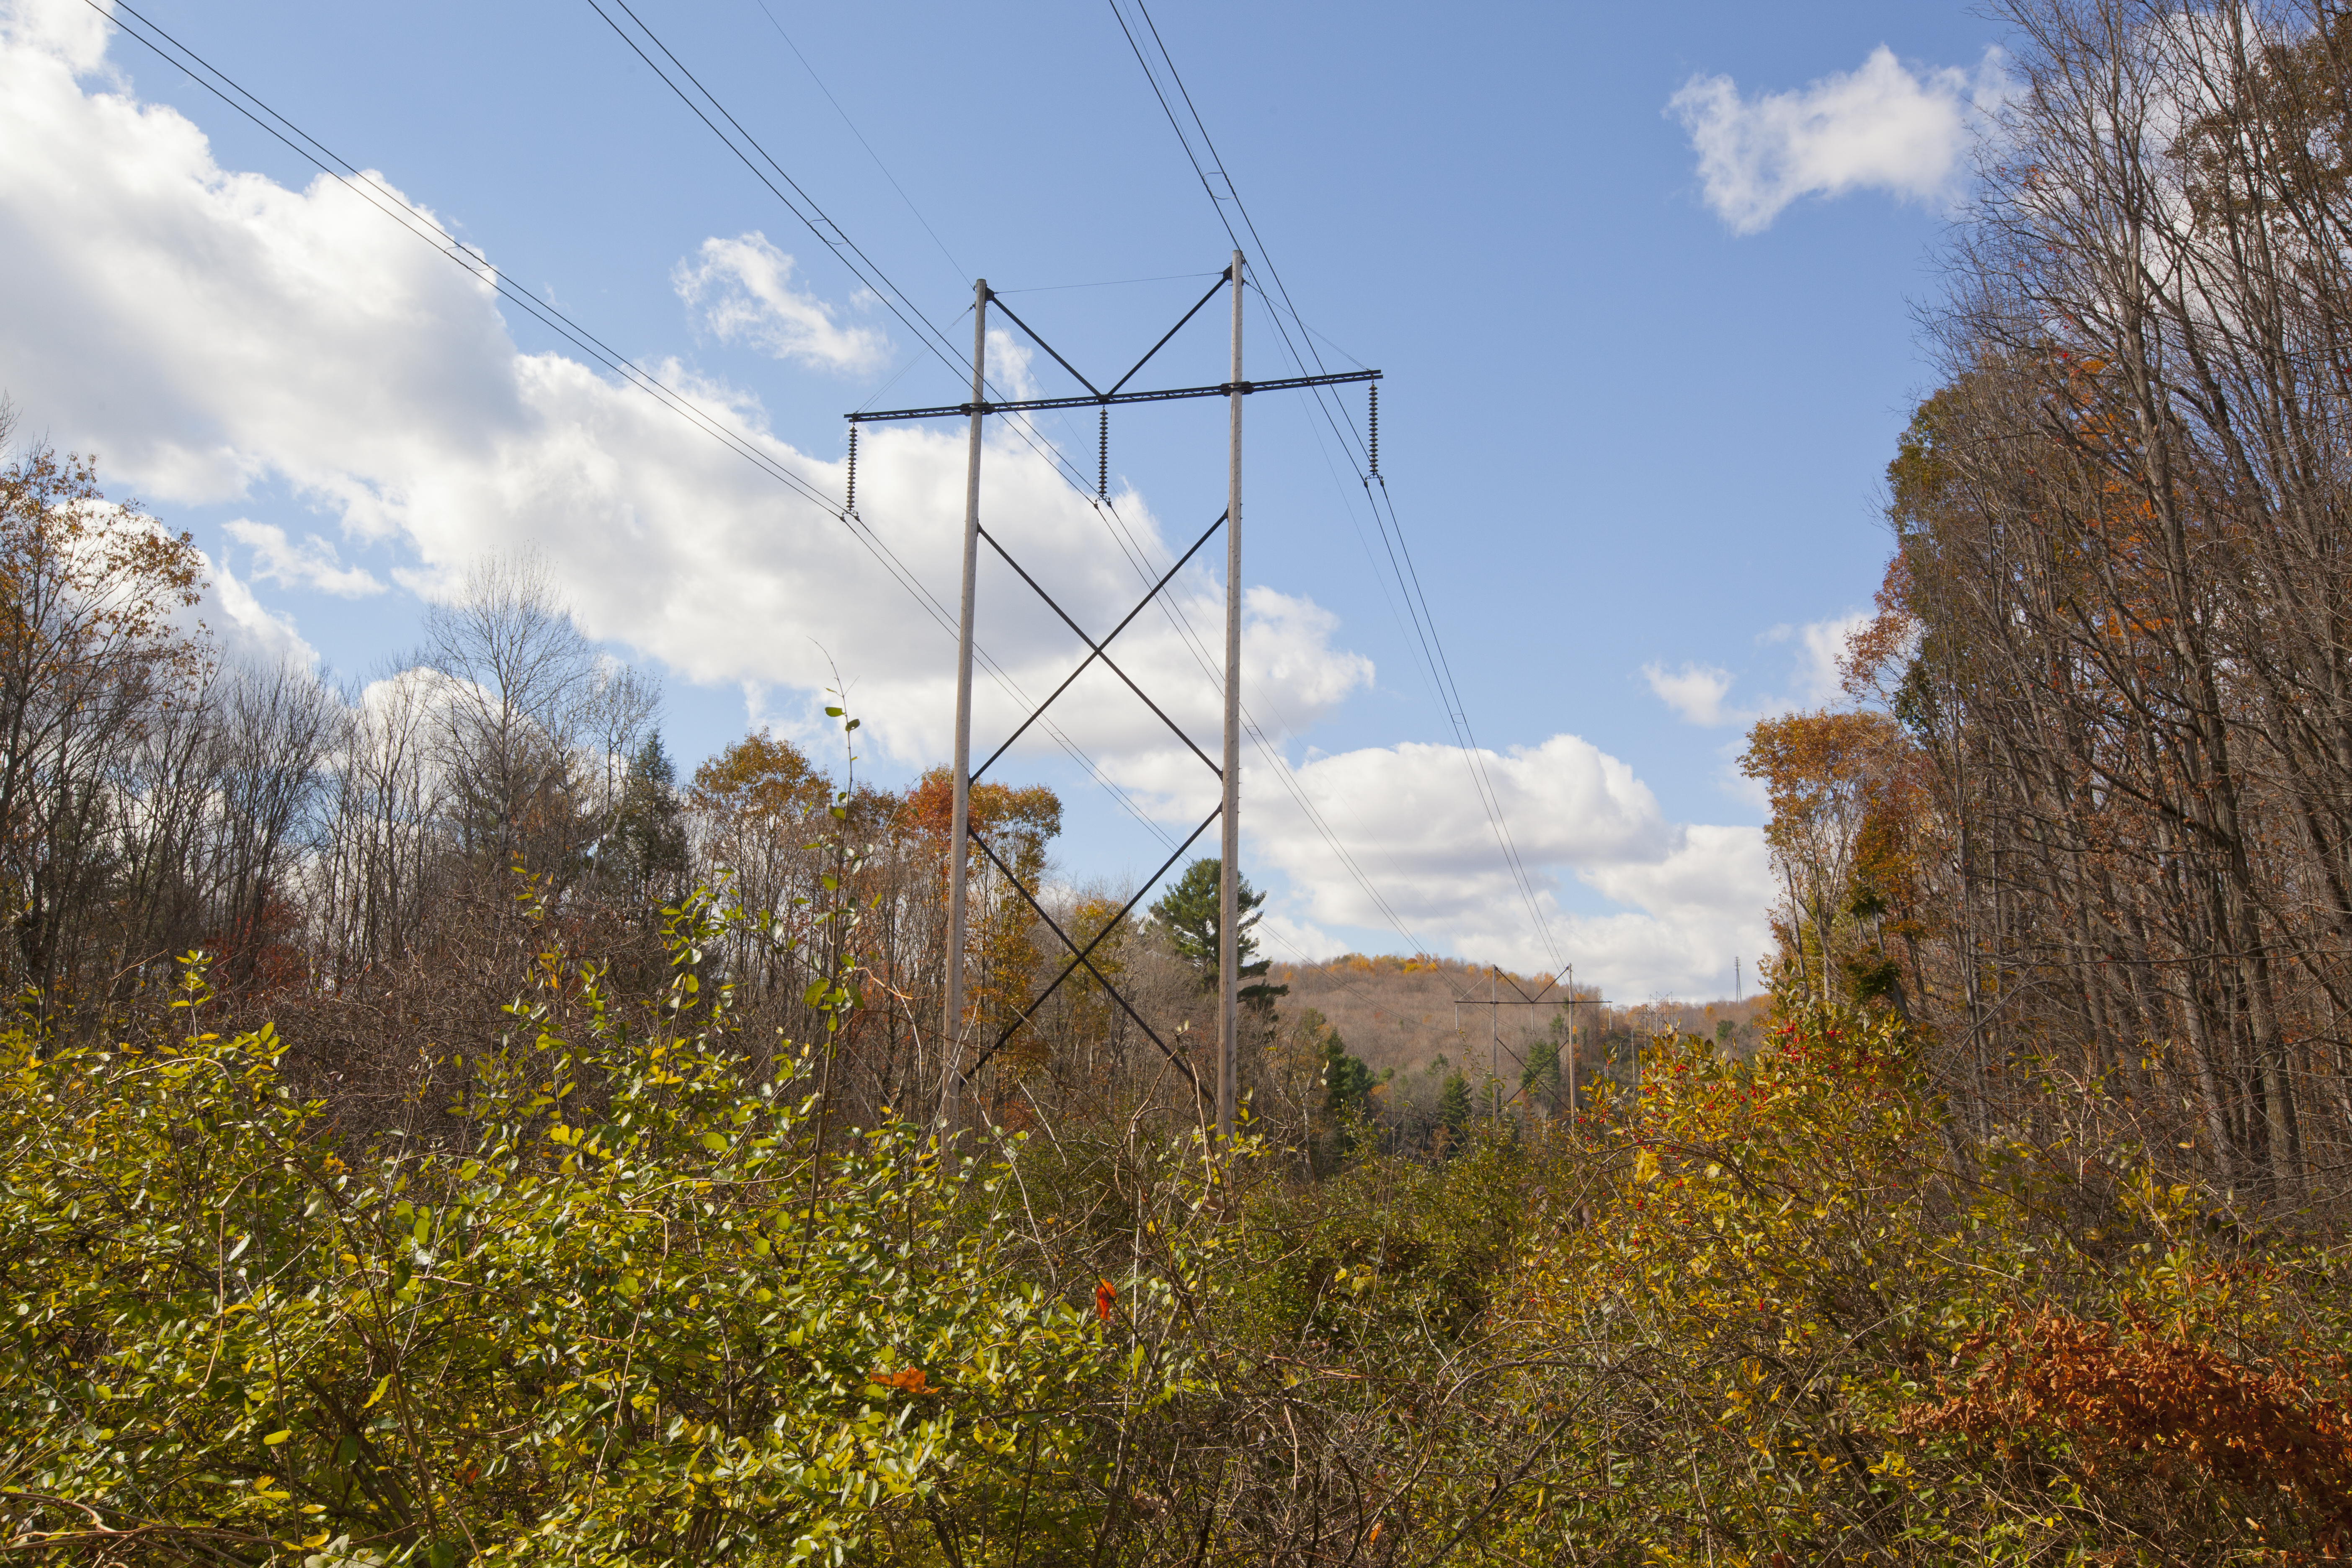 A view of high tension wires with autumn foliage. (Getty Images)